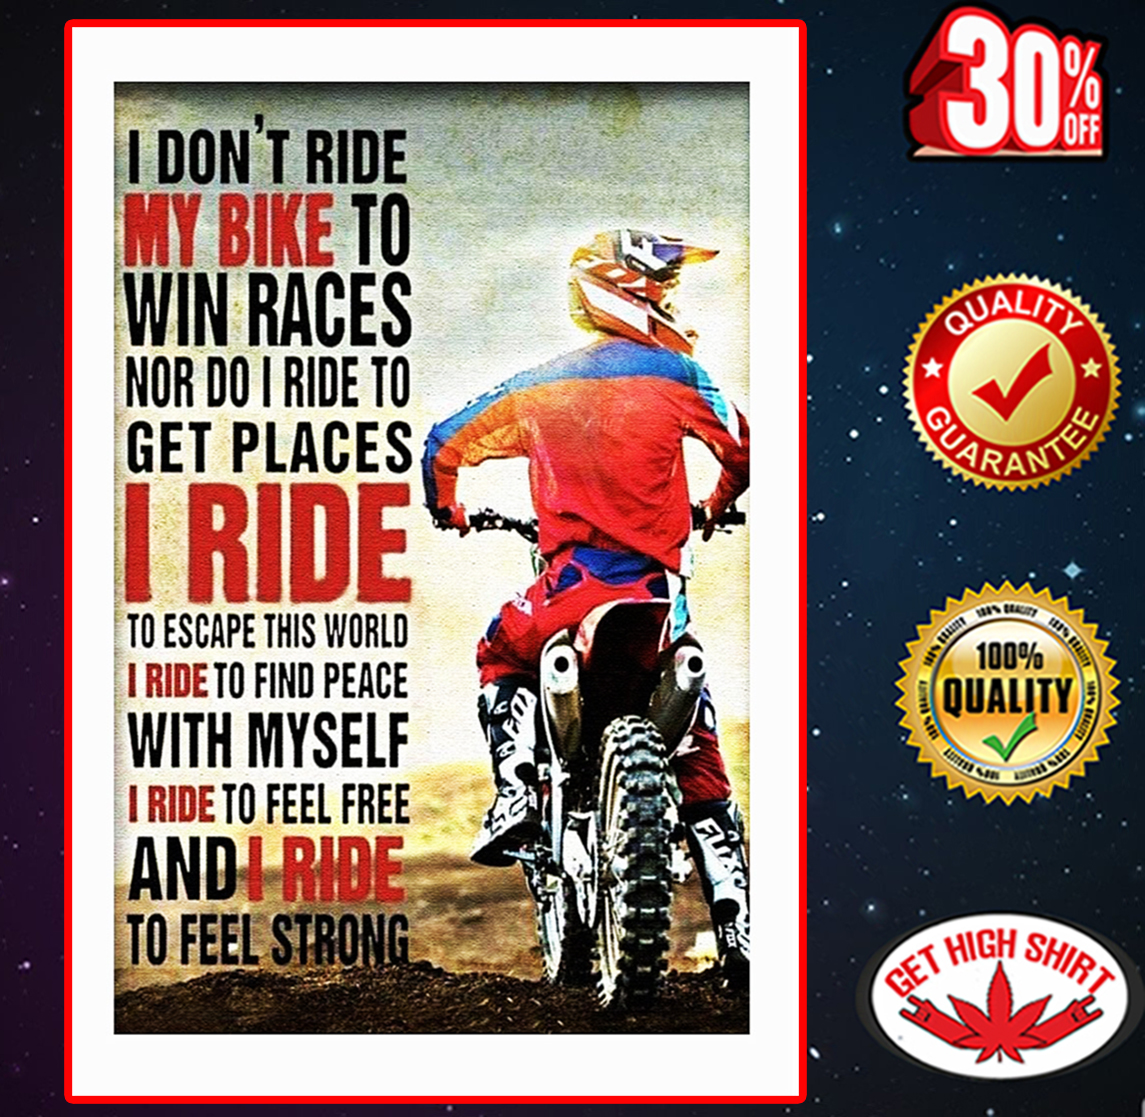 I don't ride my bike to win races poster 24x36